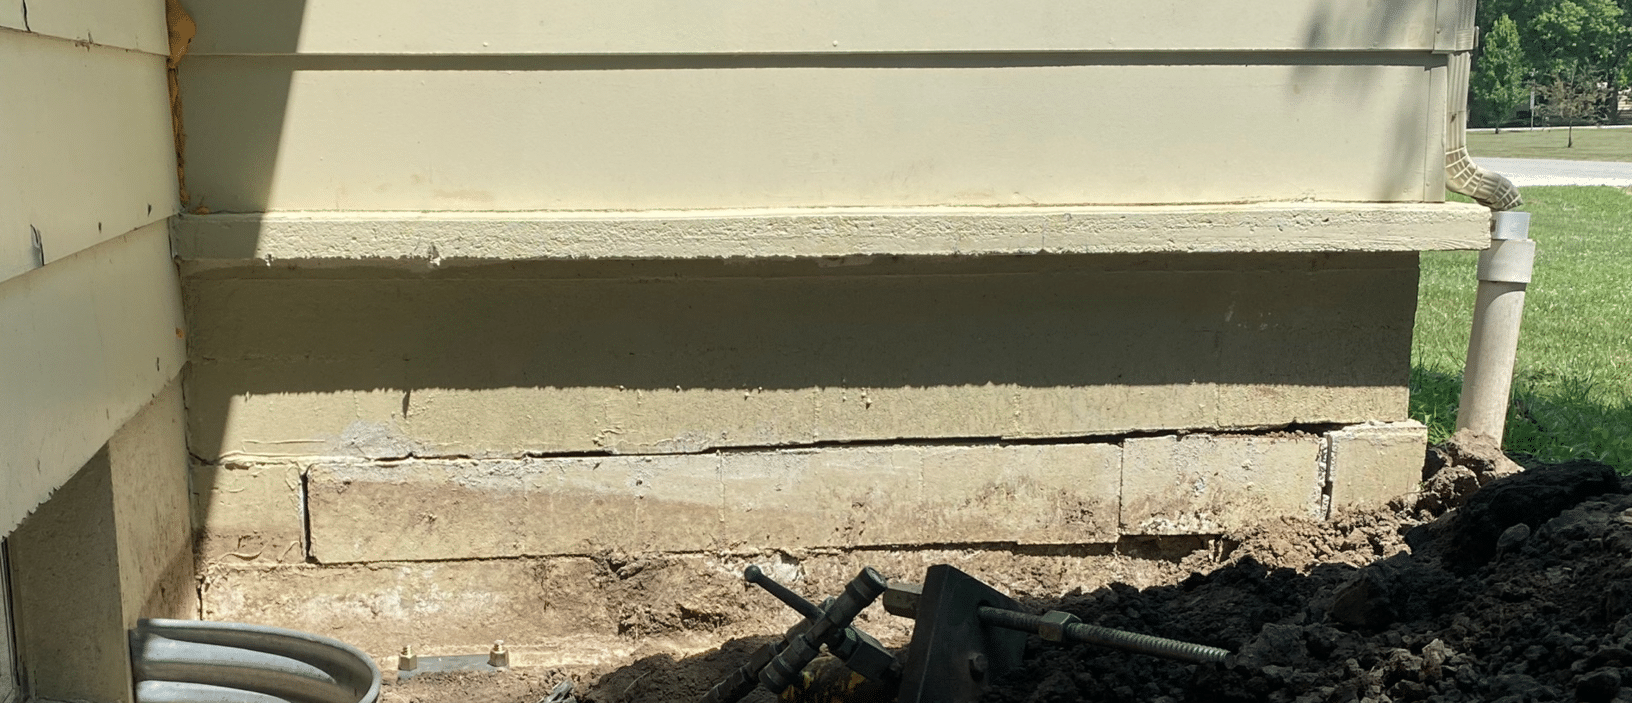 Foundation Crack Fixed in Americus, KS - After Photo